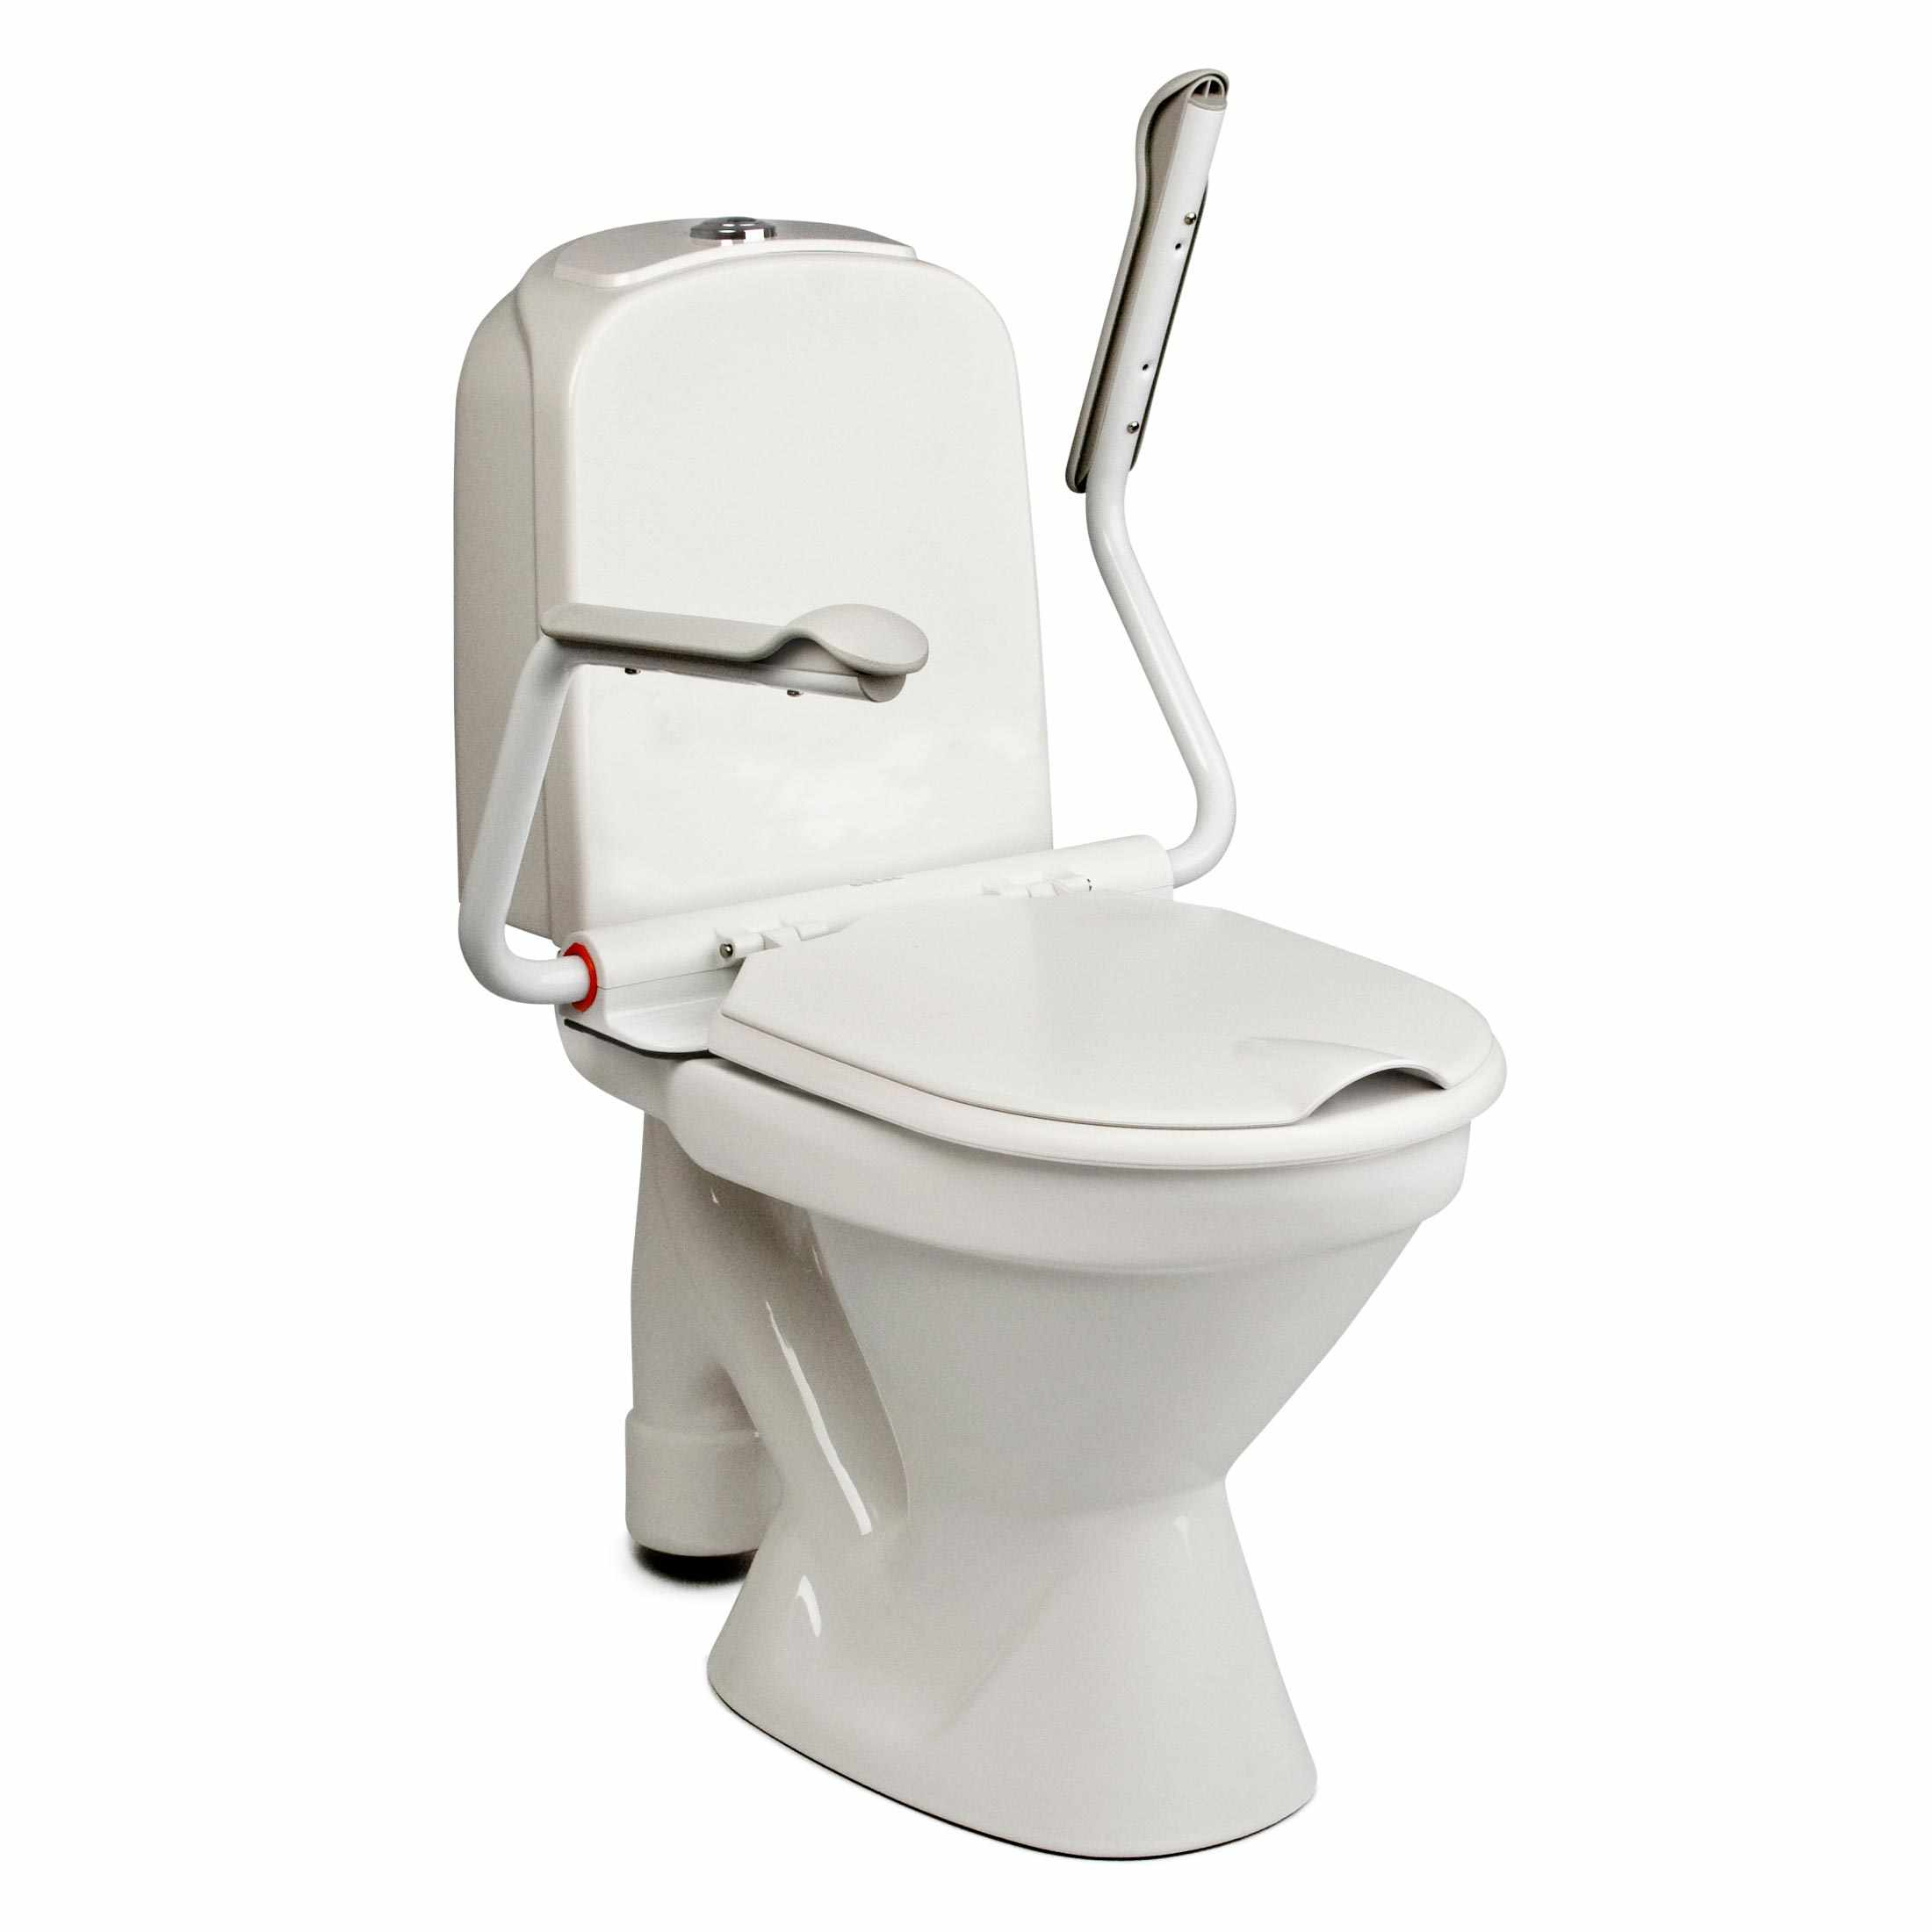 Etac Supporter toilet arm supports